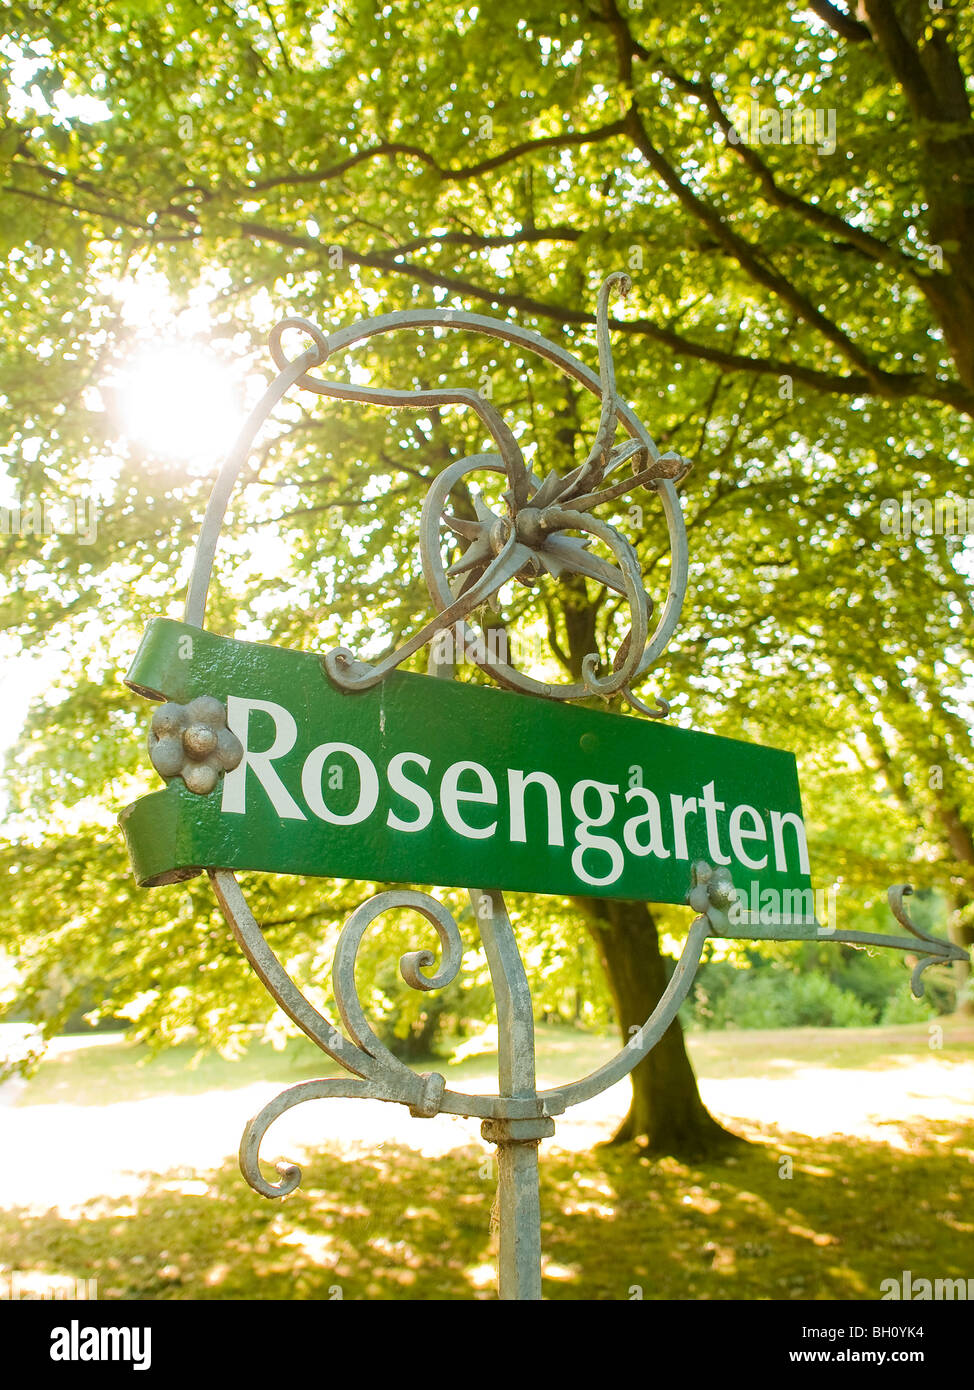 Rose Garden in the Ohlsdorf Cemetery, Hanseatic City of Hamburg, Germany Stock Photo